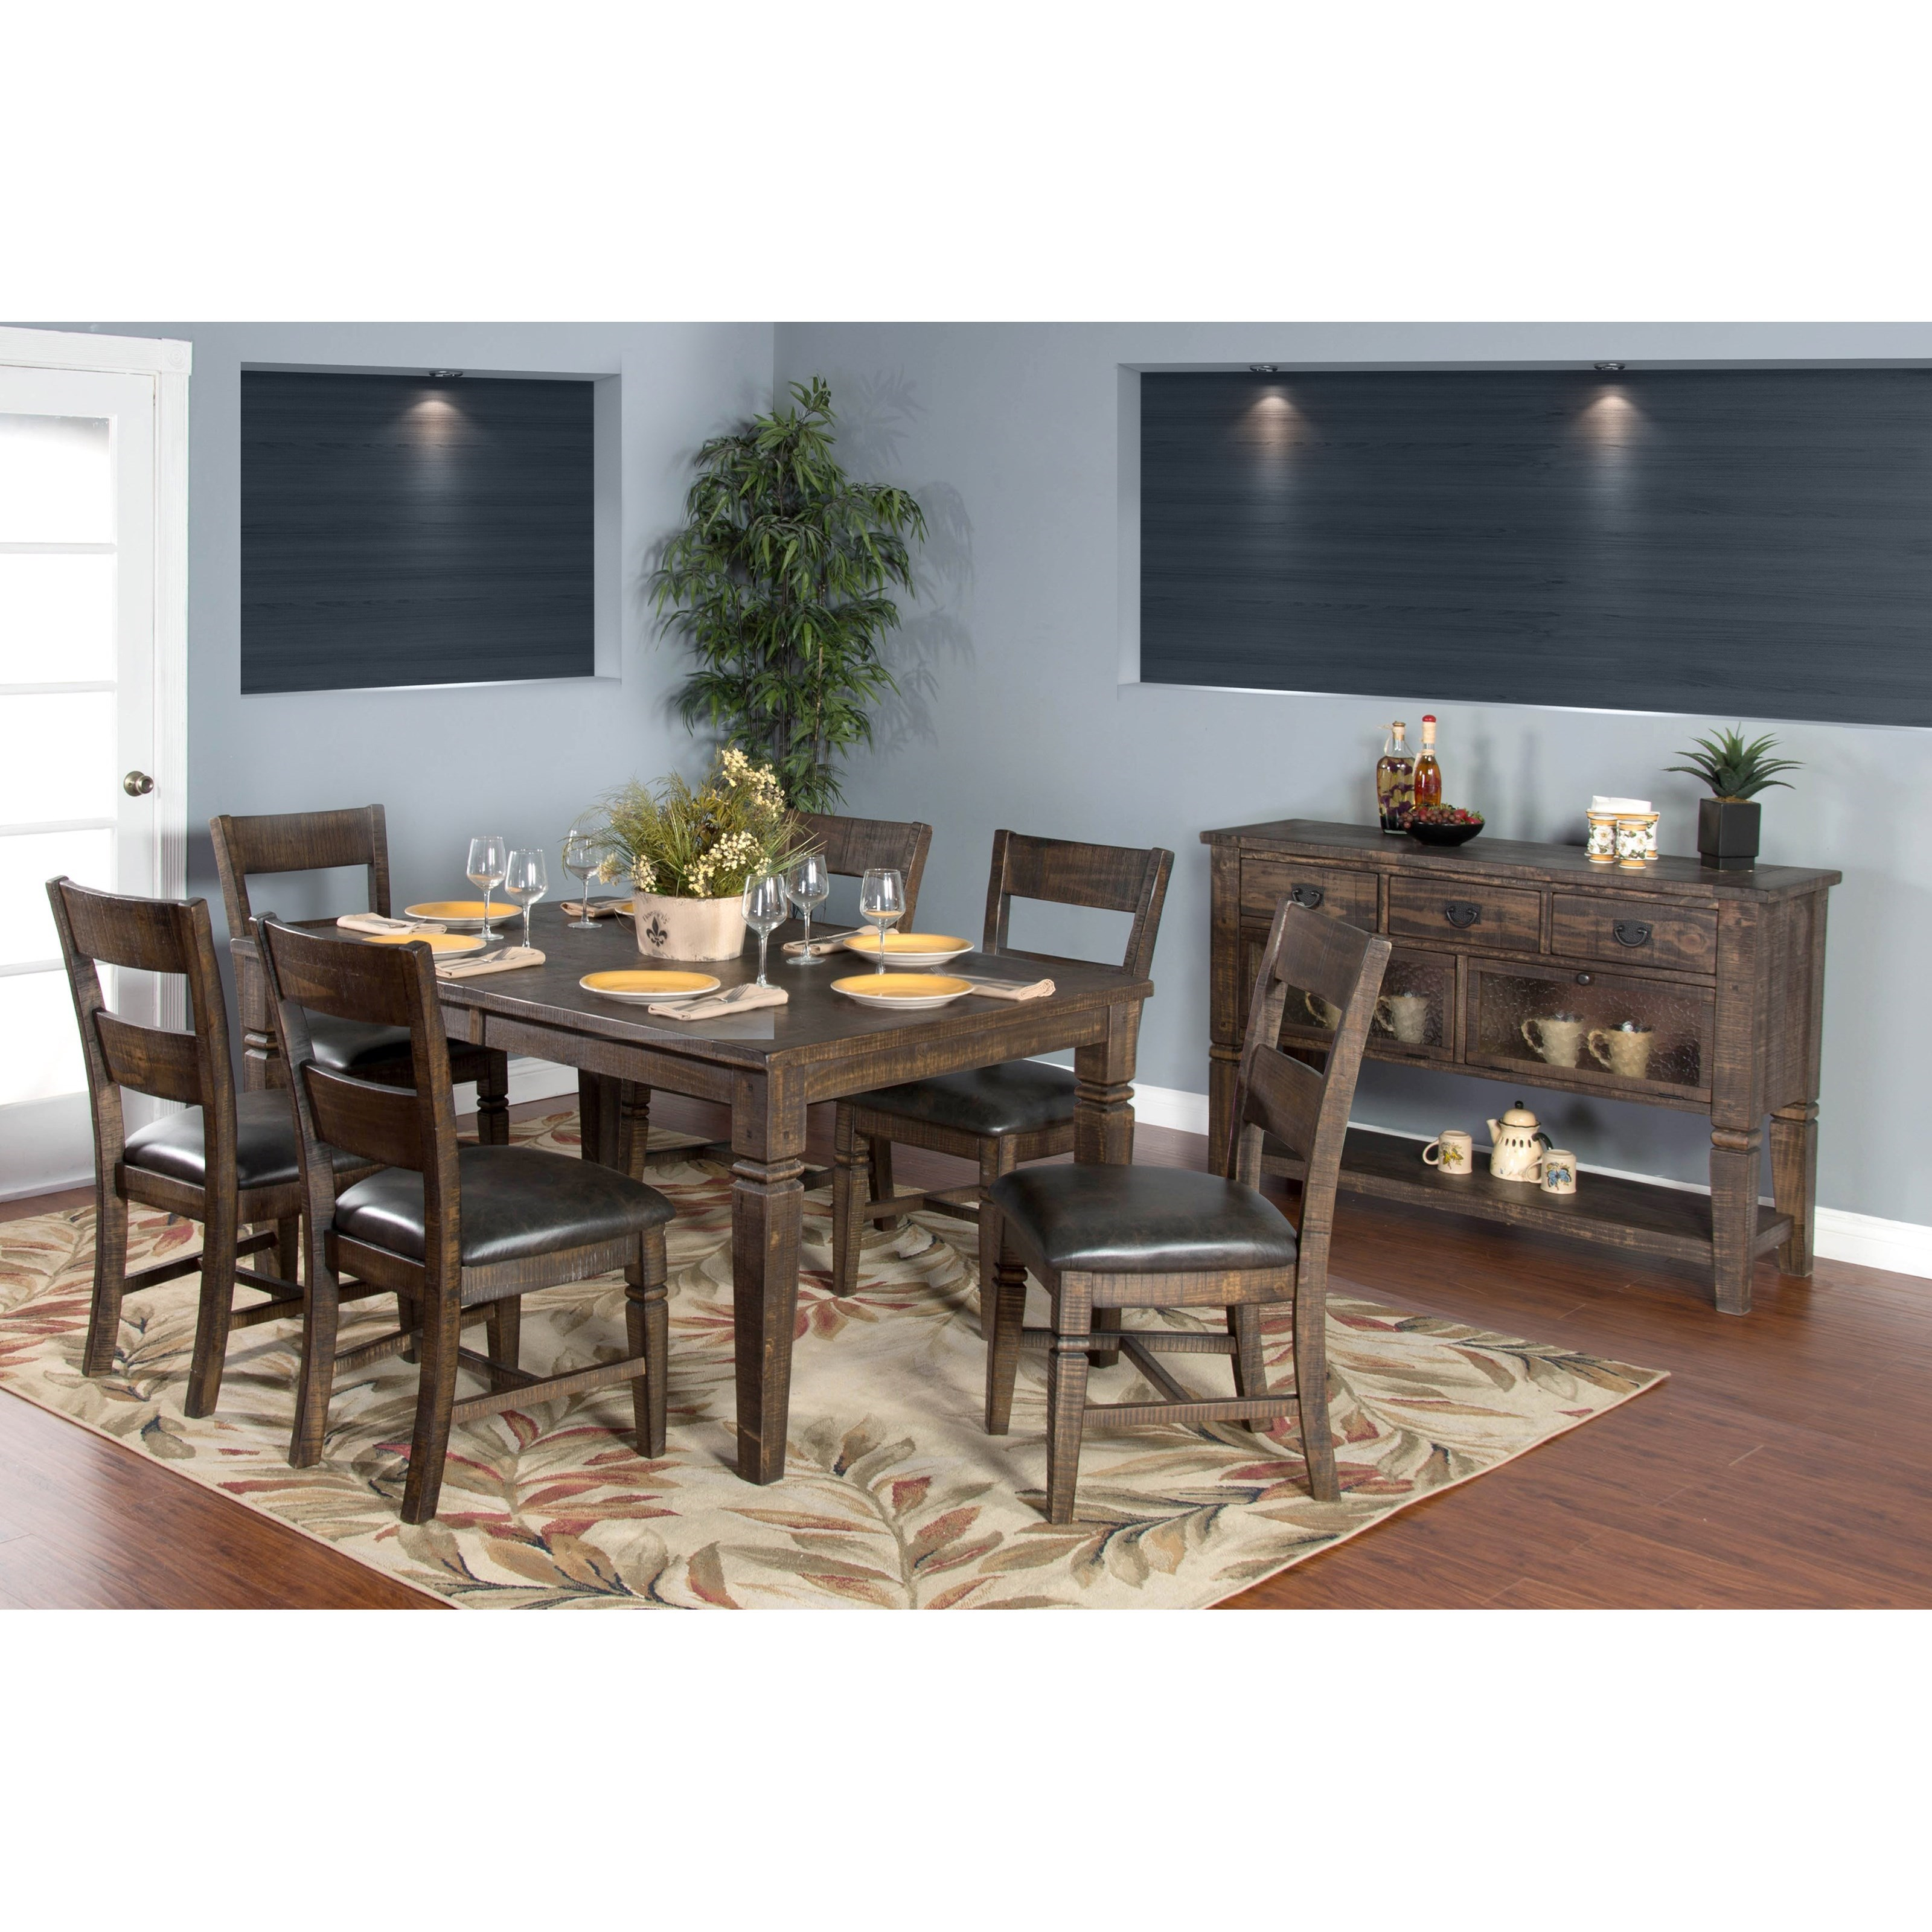 Sunny designs homestead 7 piece extension dining table set for Homestead furniture and appliances